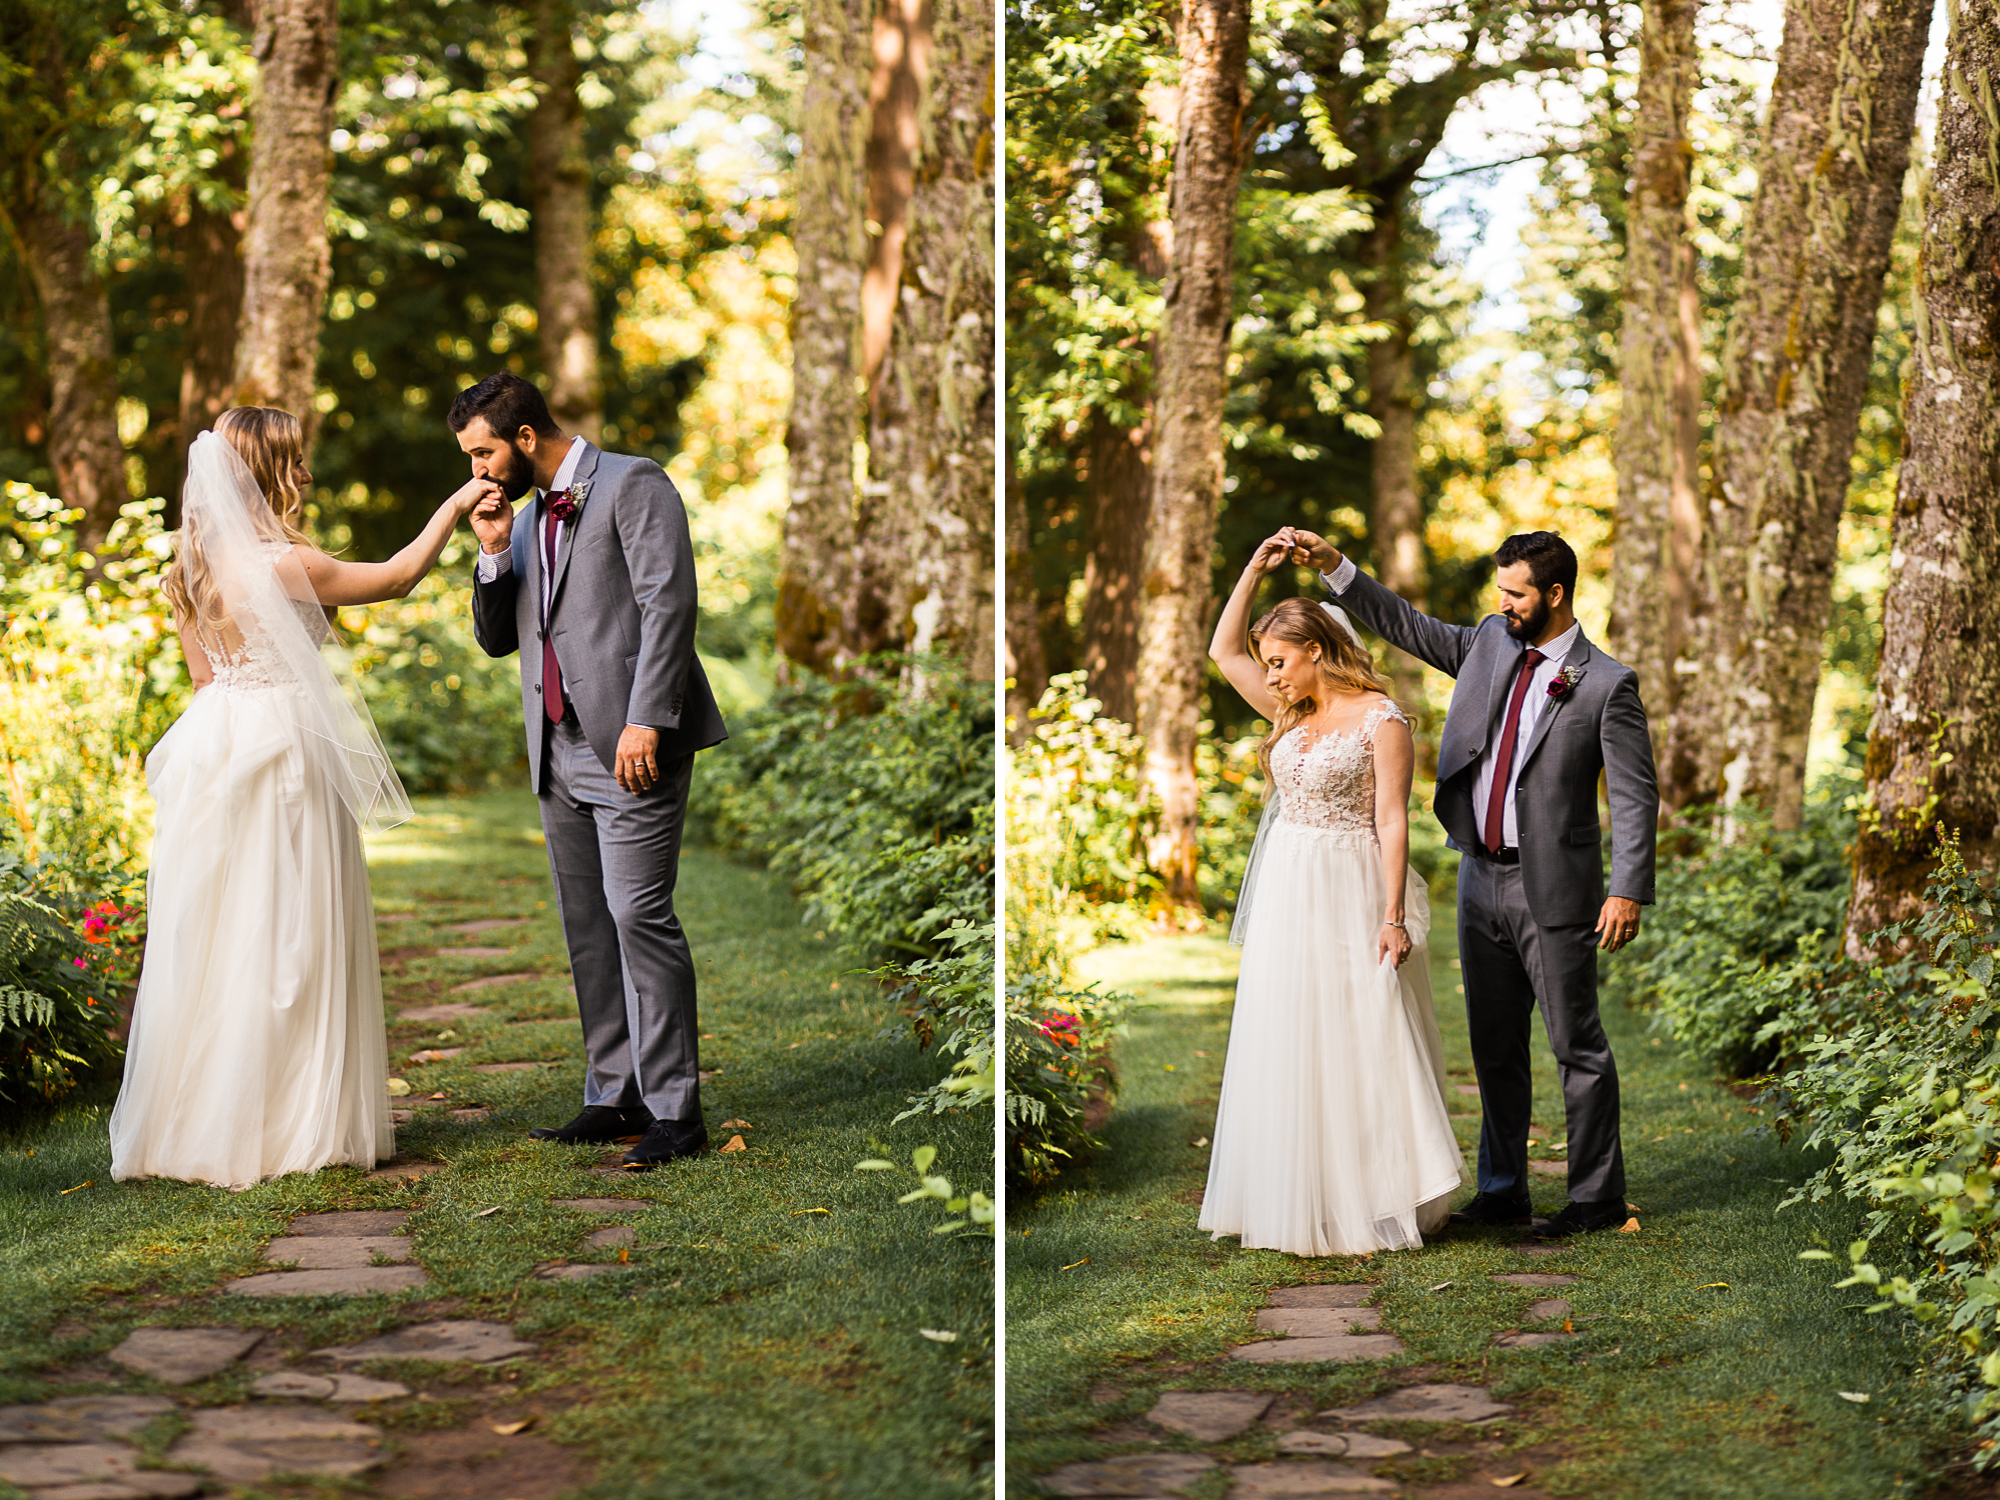 Alayna & Eric - Wedding - Bridal Veil Lakes - Malina Rose Photography- BlogD93.jpg